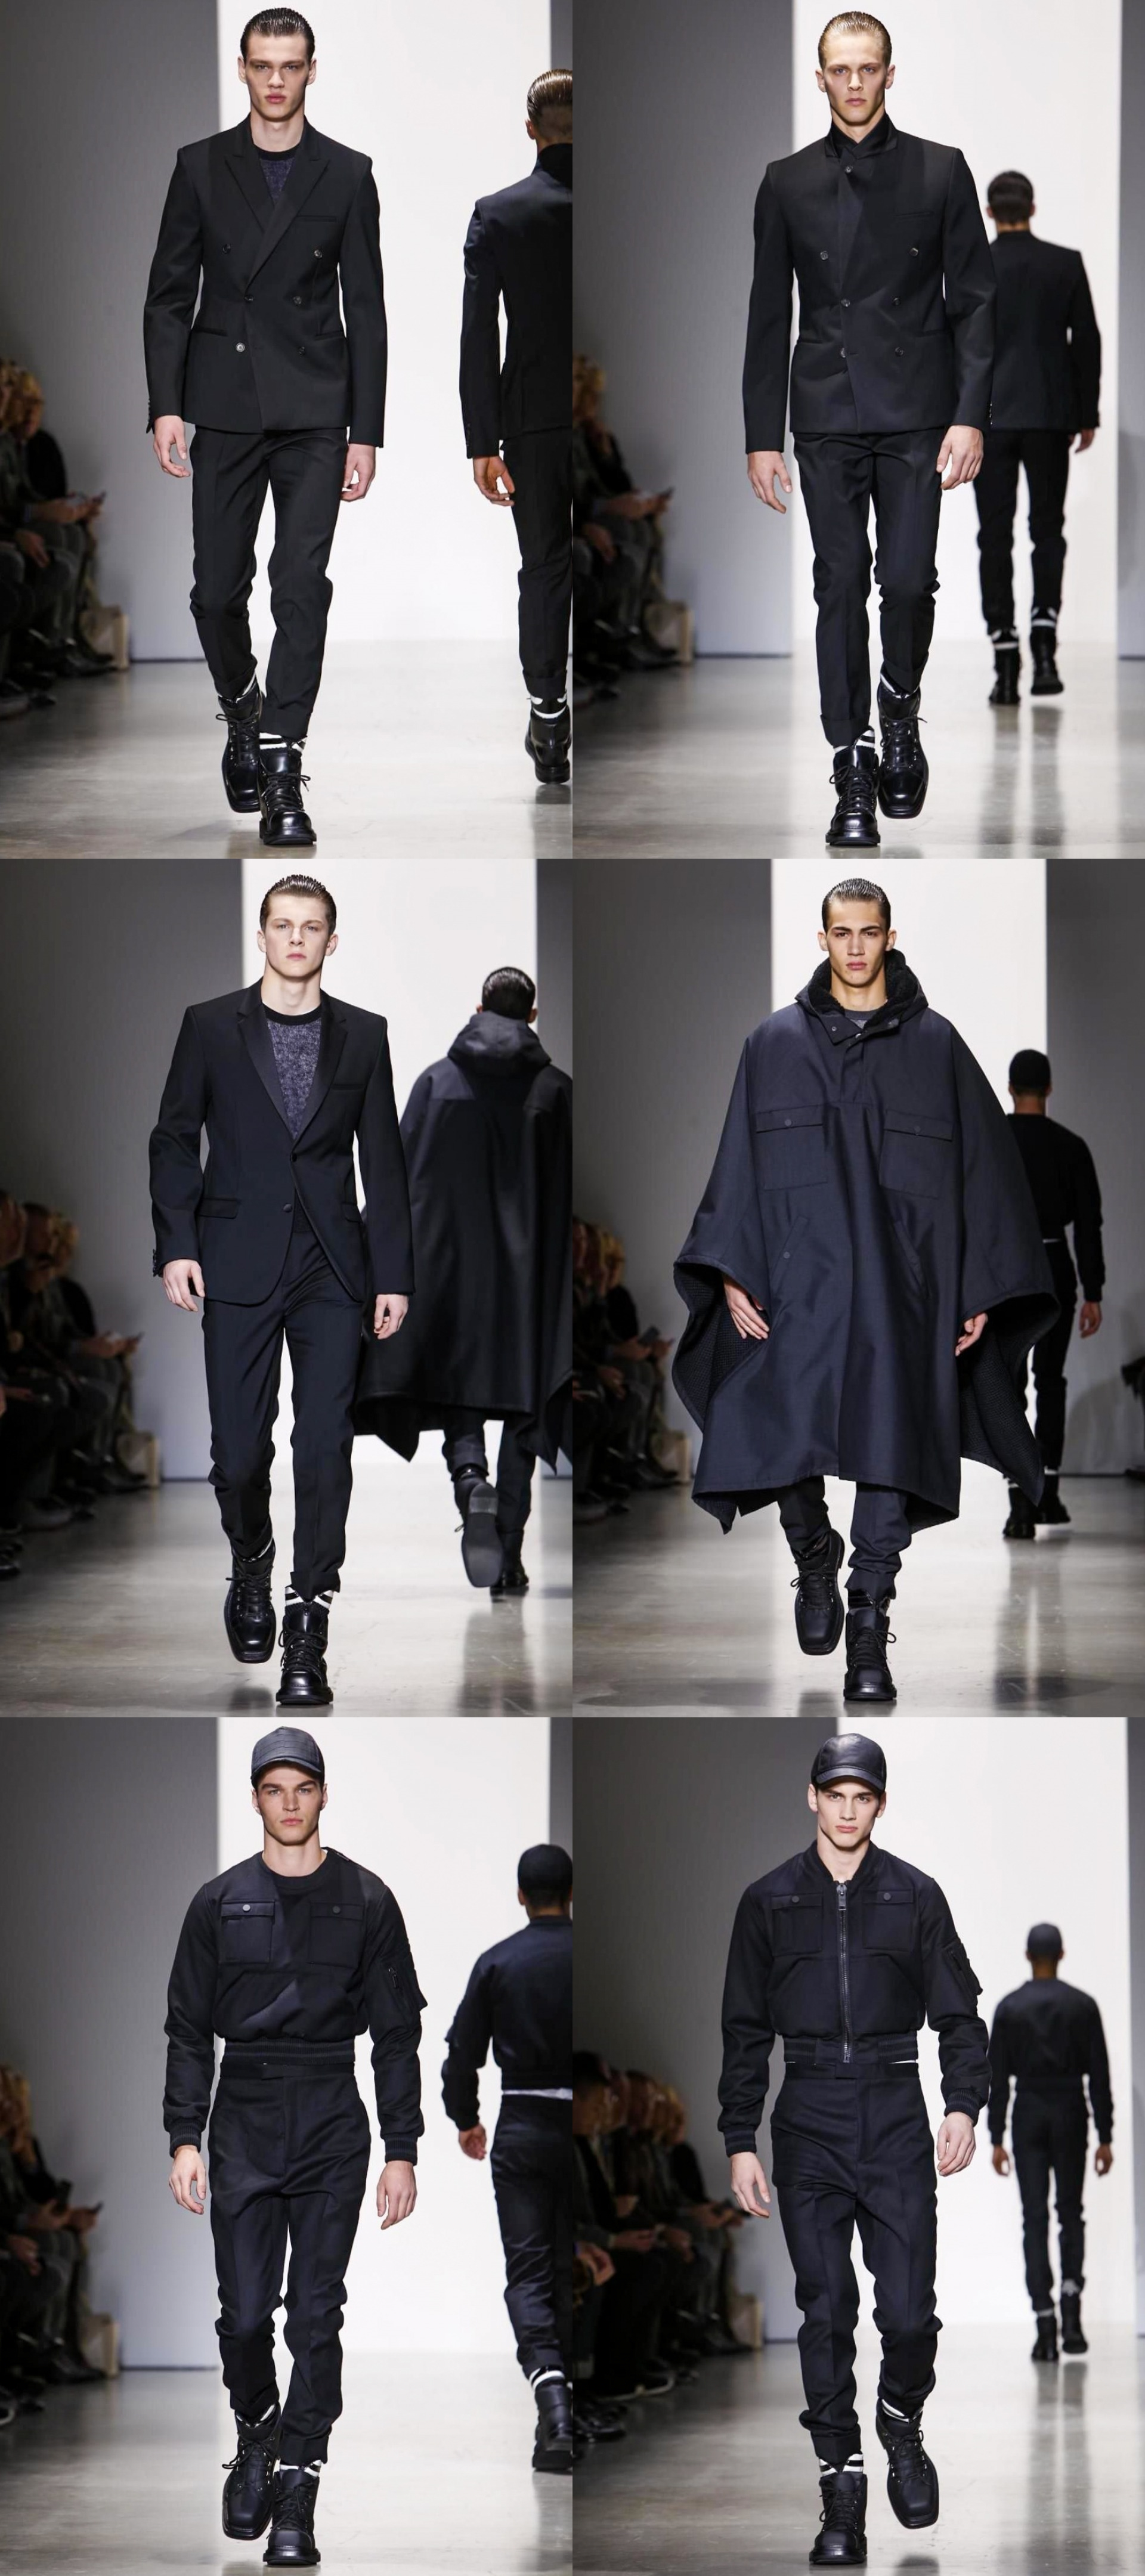 CALVIN KLEIN, fw15, fall winter 2015, milan fashion week, desfile 2015, moda masculina, tendencia masculina, menswear, fashion blogger, blogger, style, blogger, fashion blogger, moda sem censura, alex cursino,